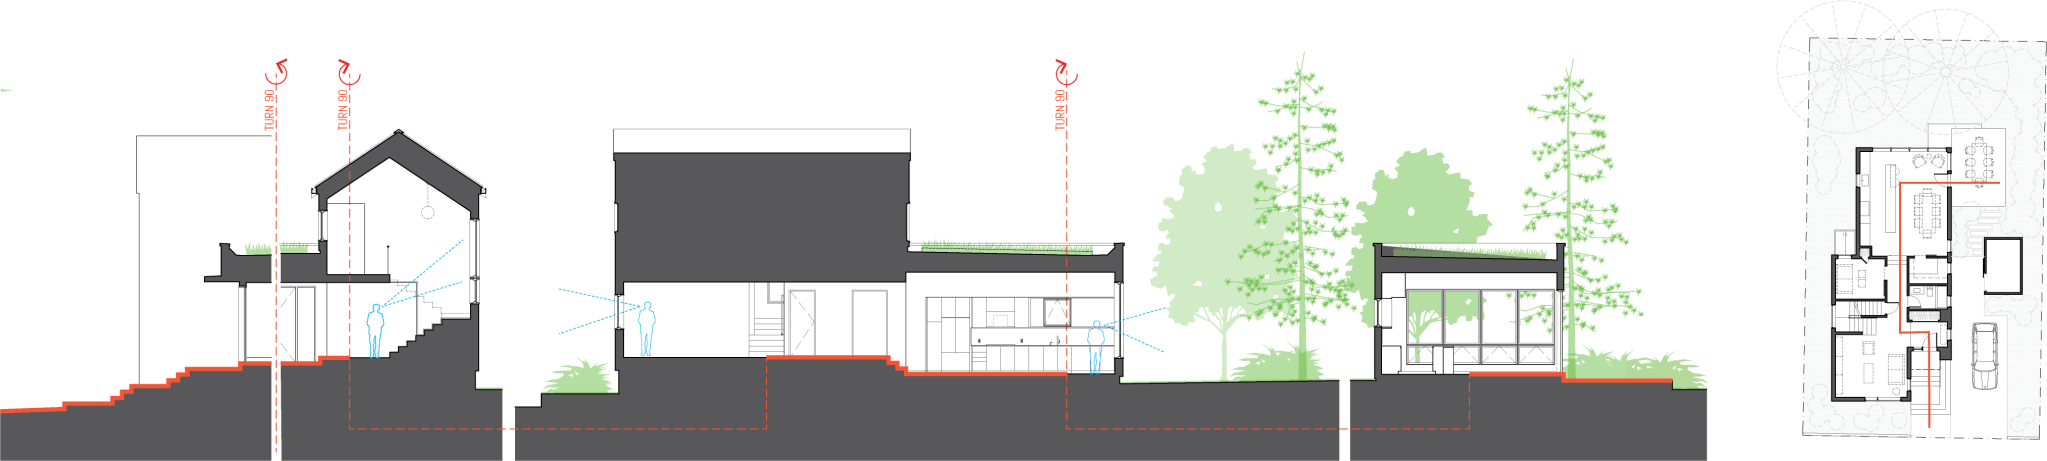 Compact modern house section drawings